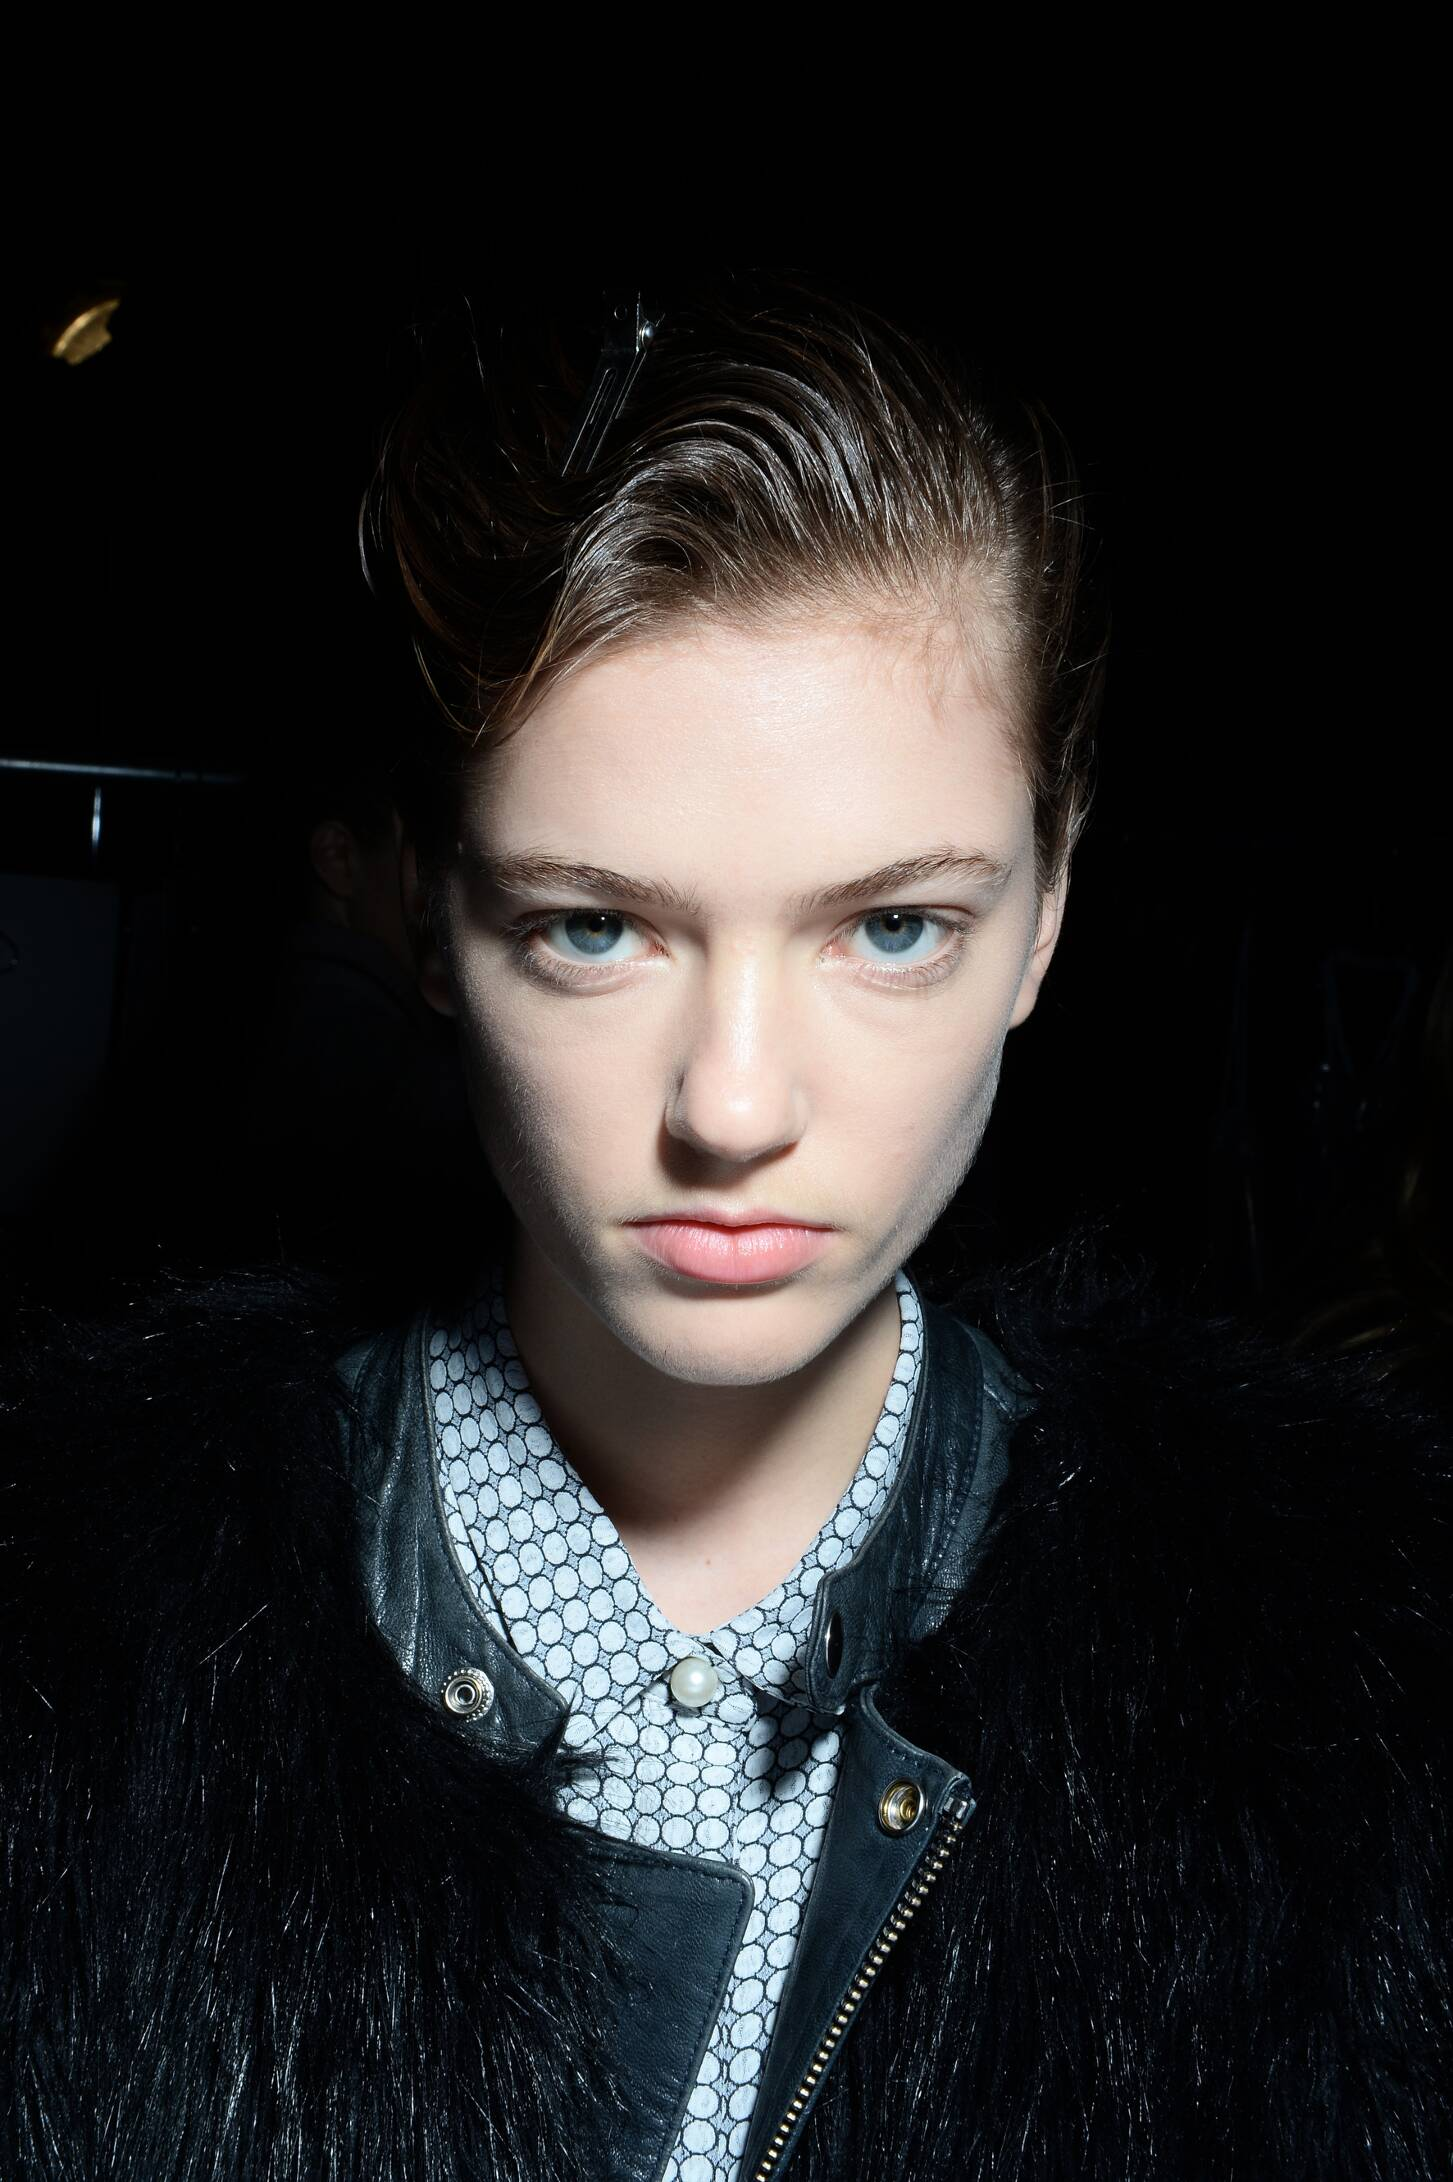 Backstage FW 2015 Fashion Model Diesel Black Gold